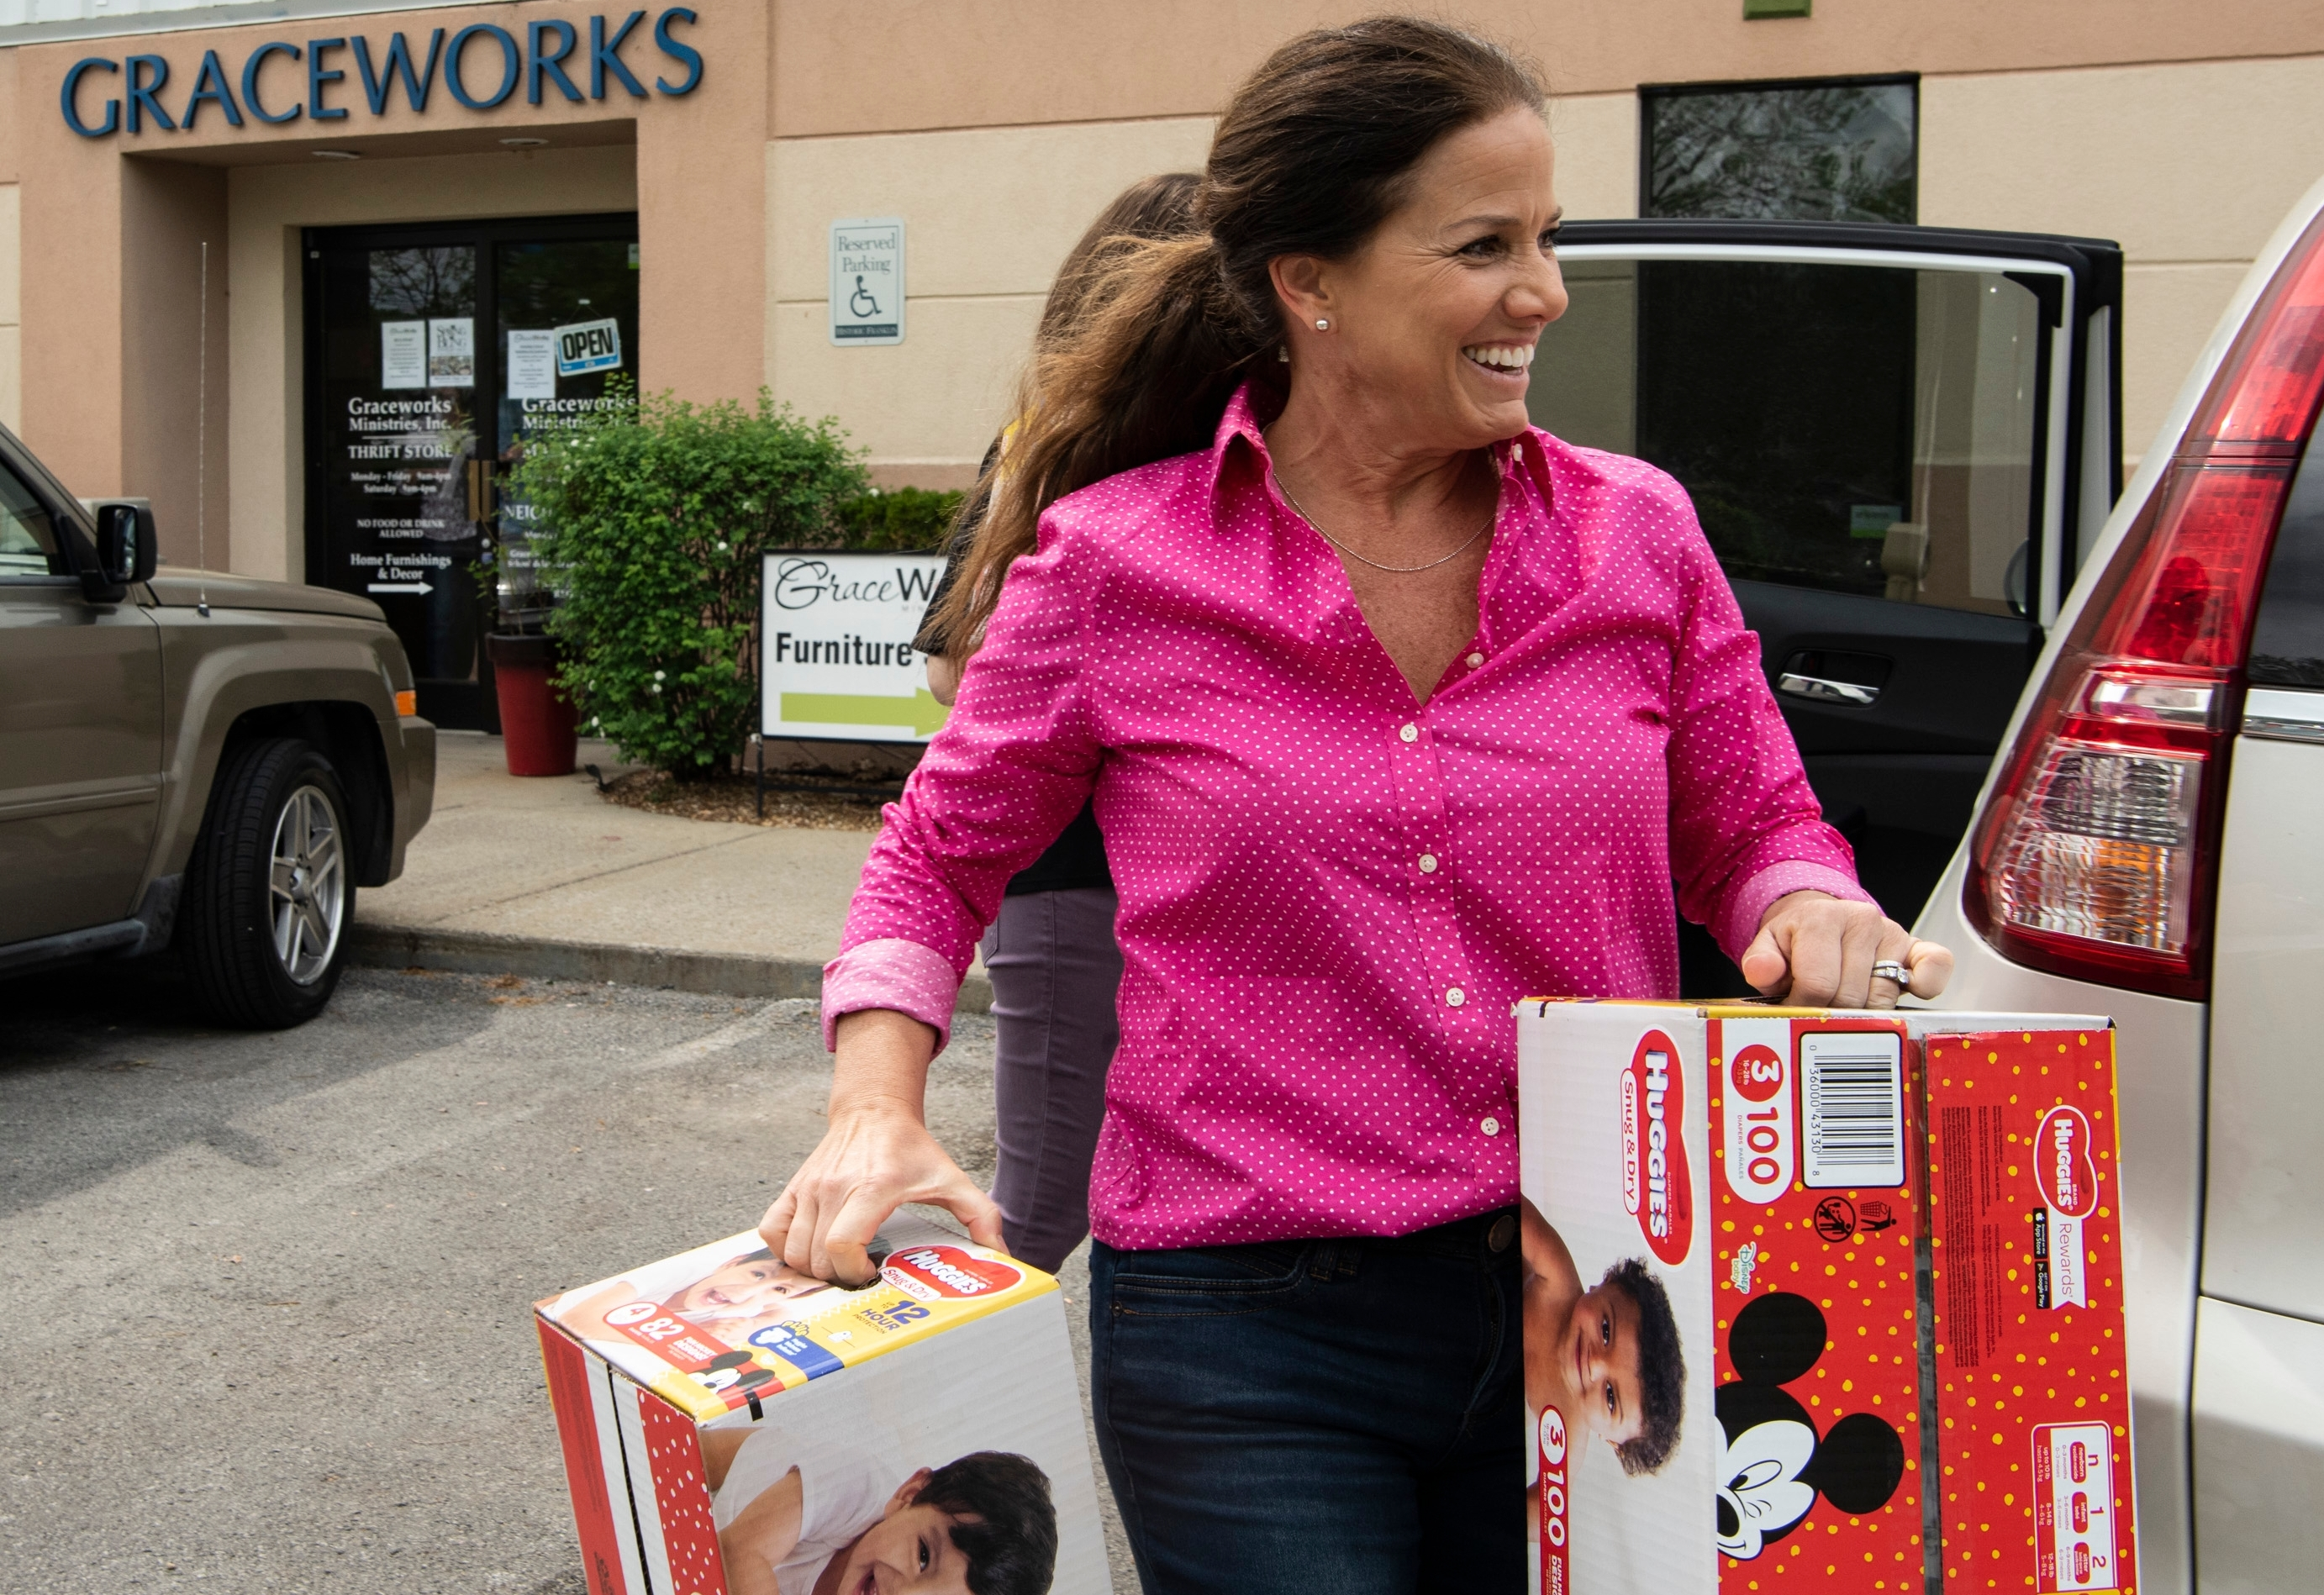 First Lady delivers items to GraceWorks Ministries